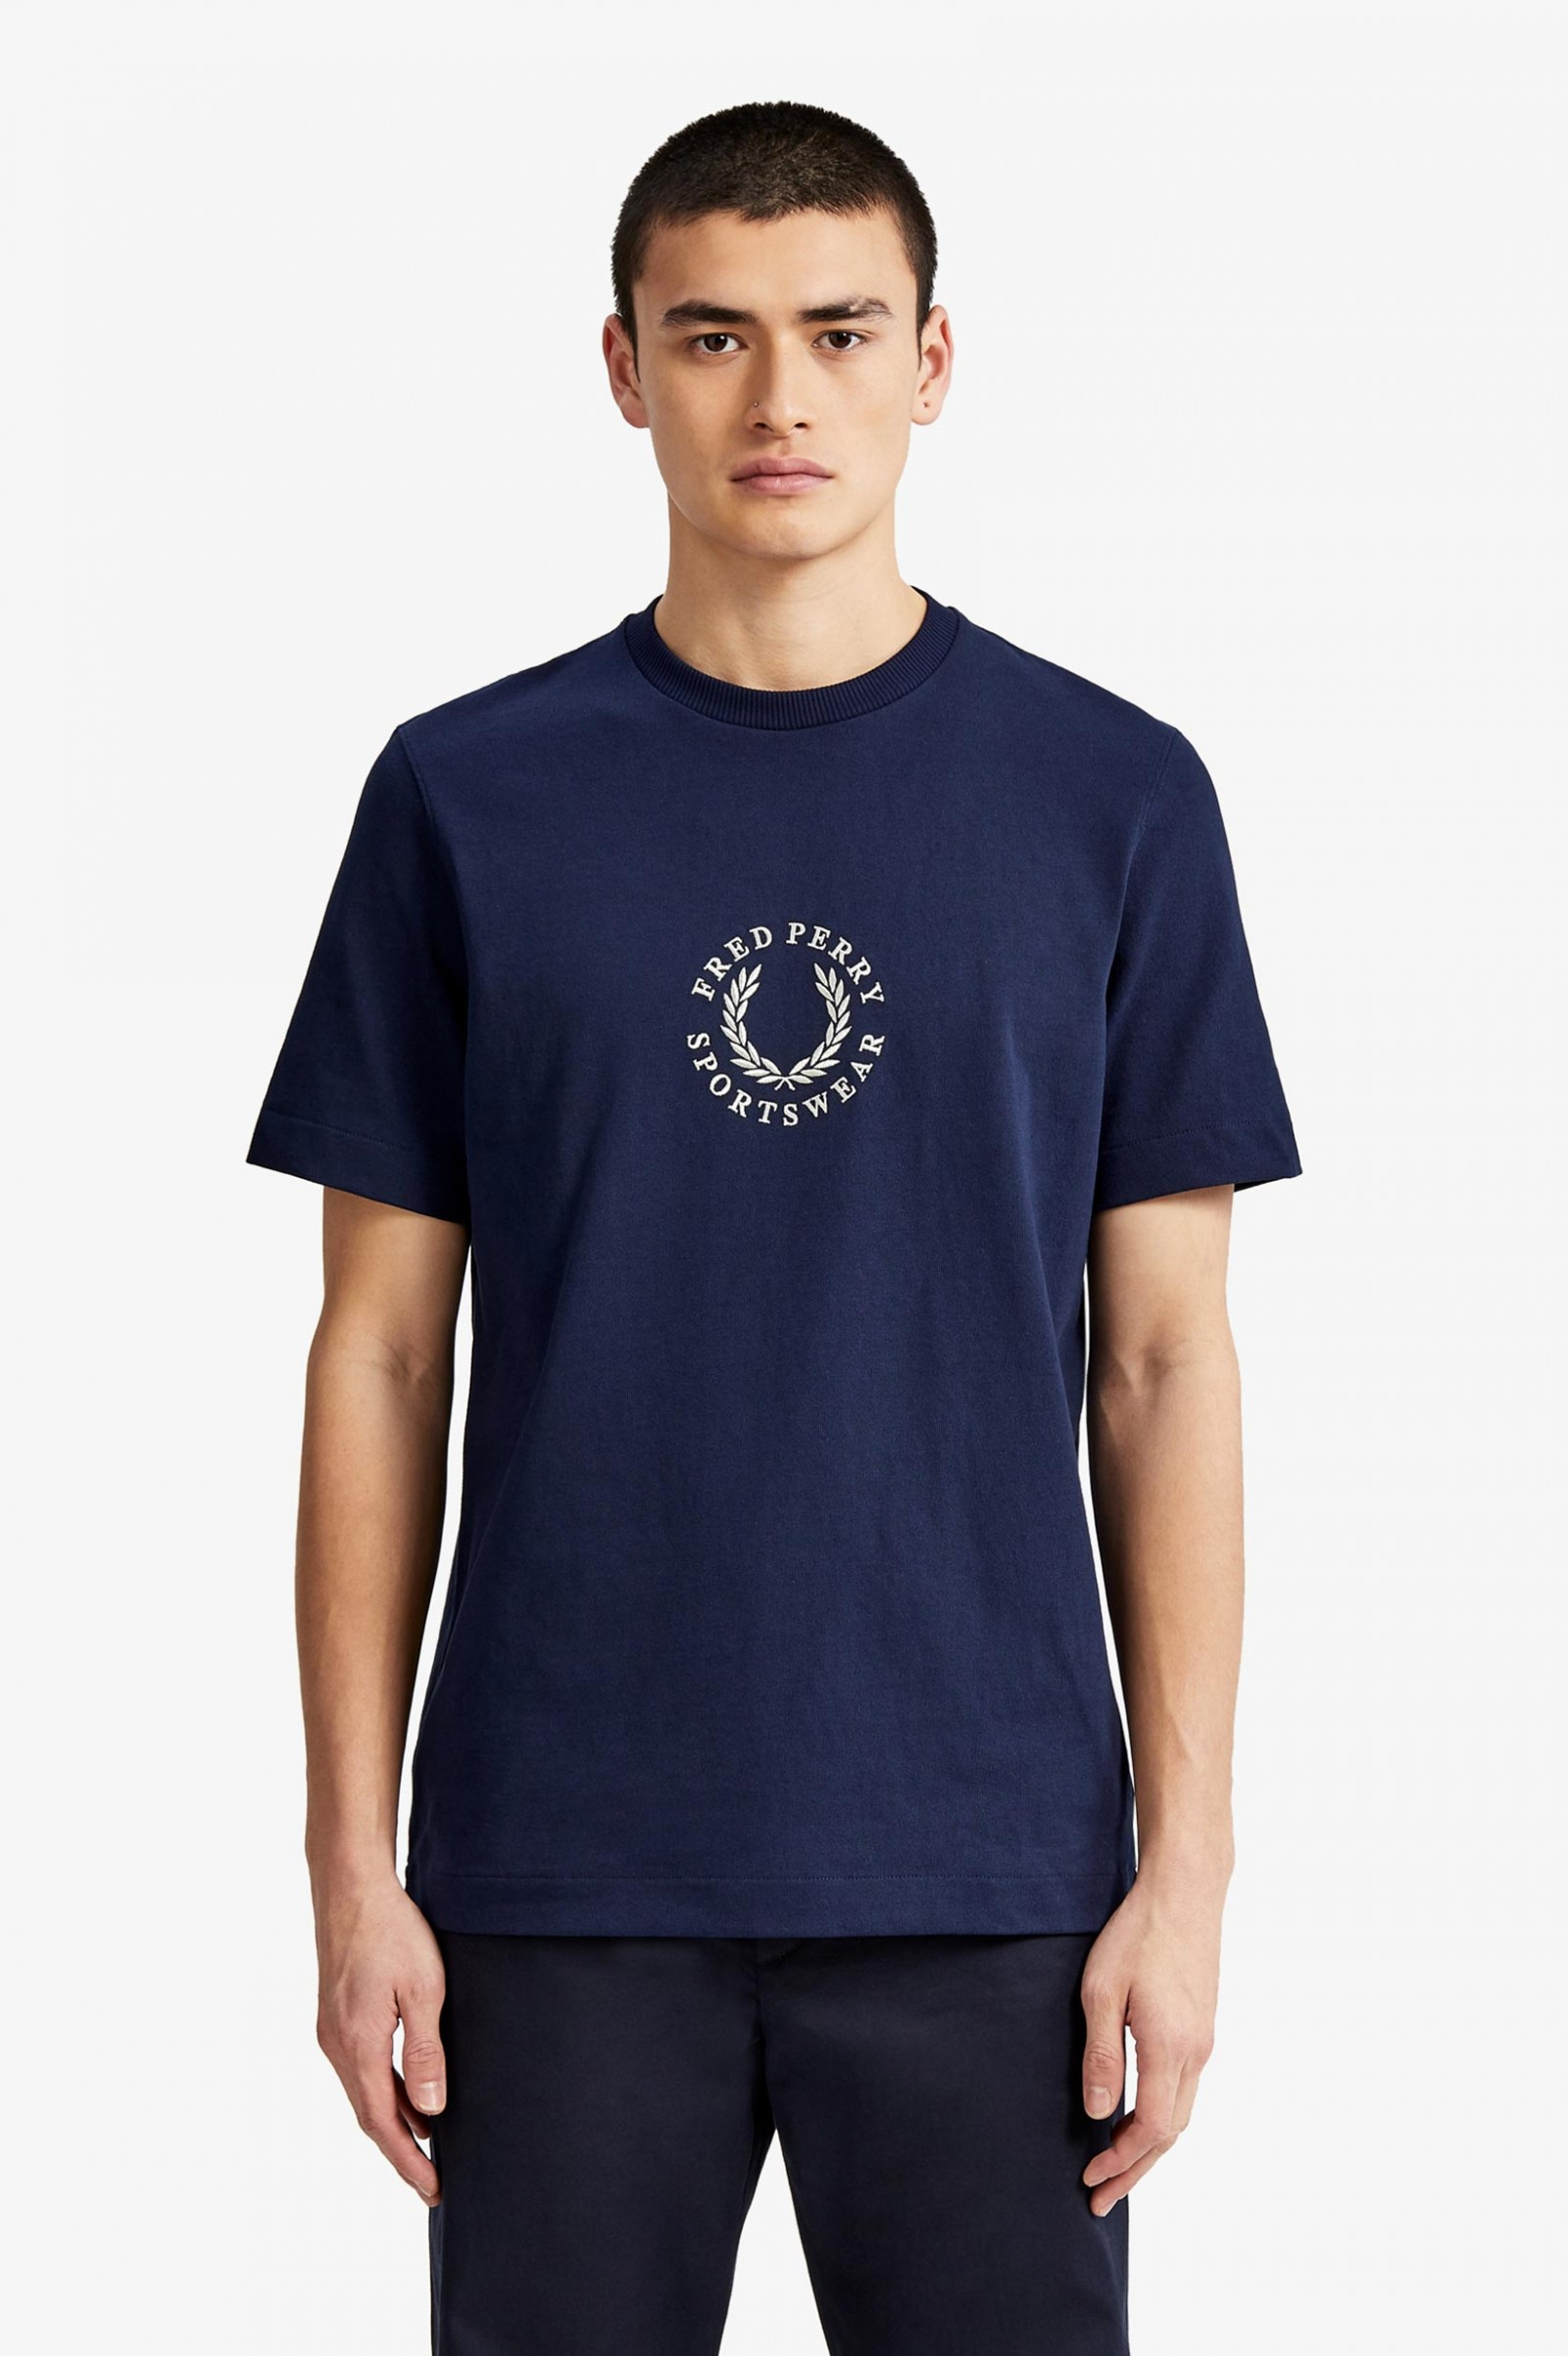 Archive Embroidery T-Shirt - Carbon Blue